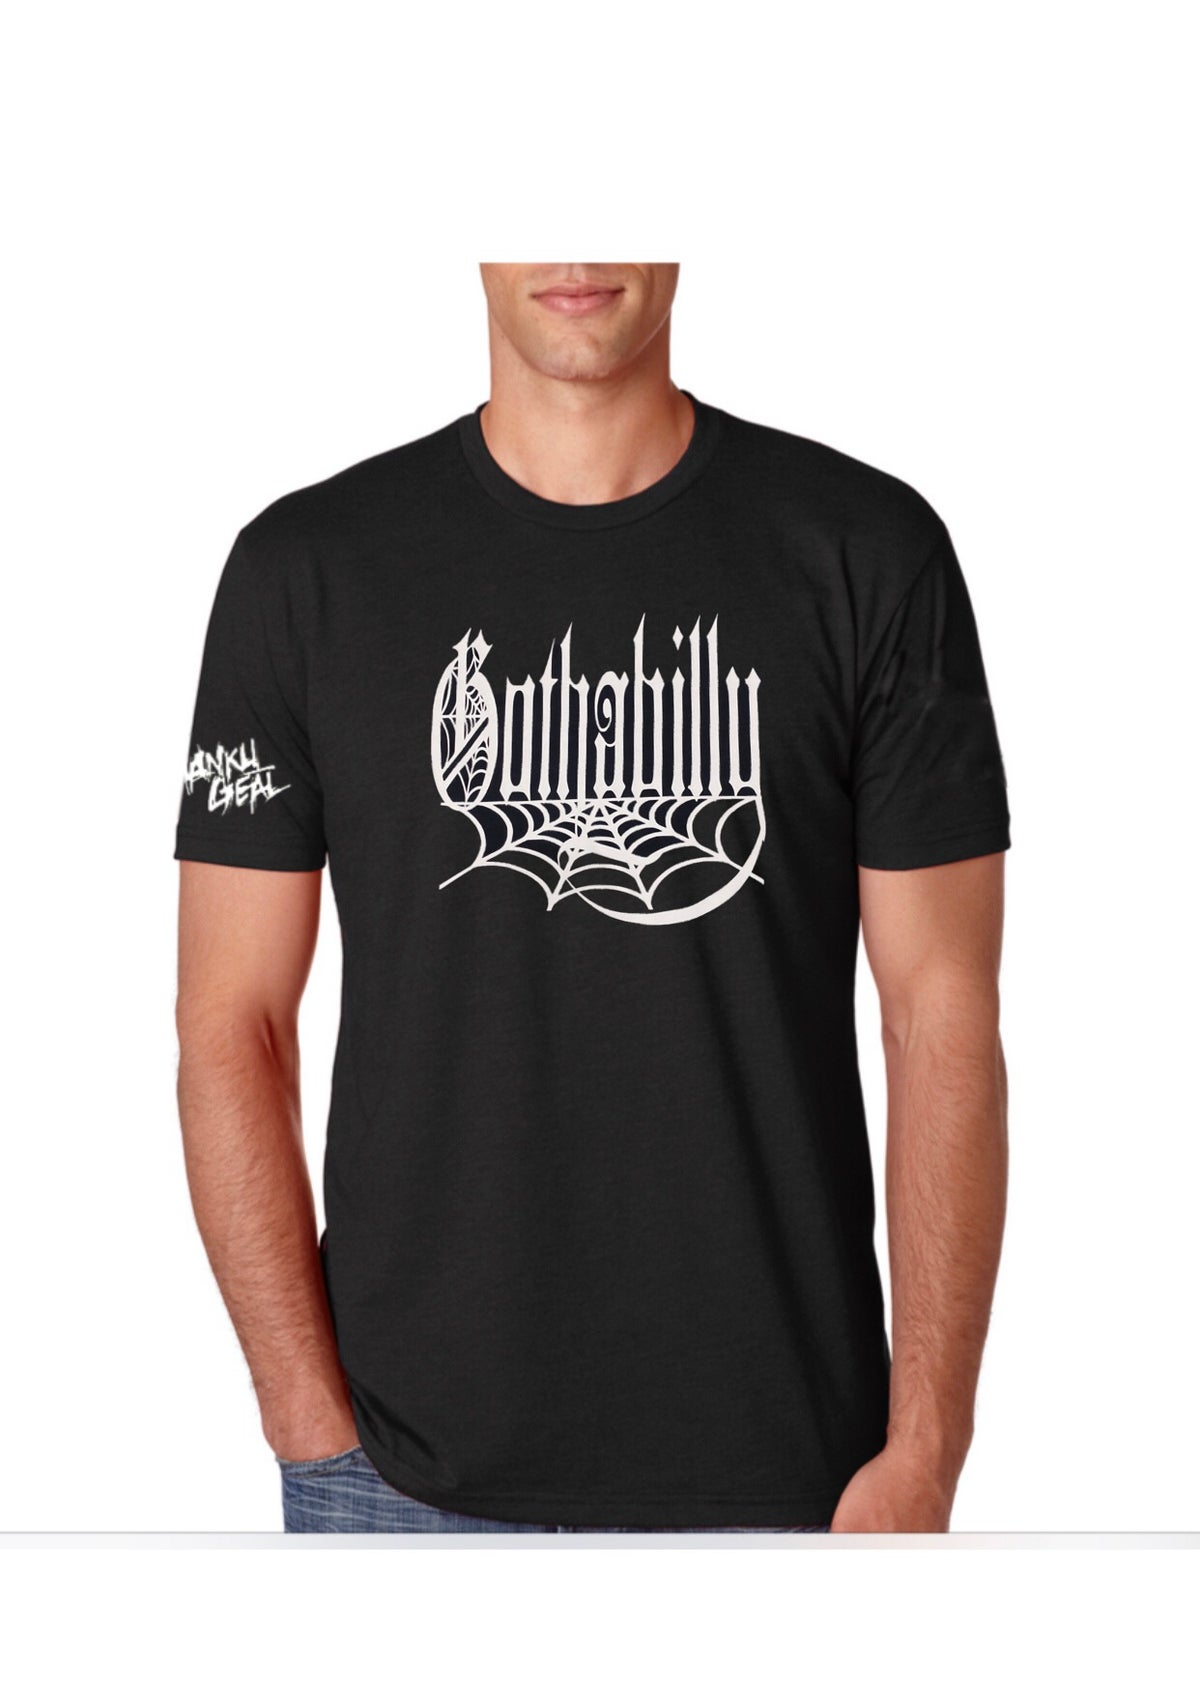 Image of Gothabilly Mens Tee